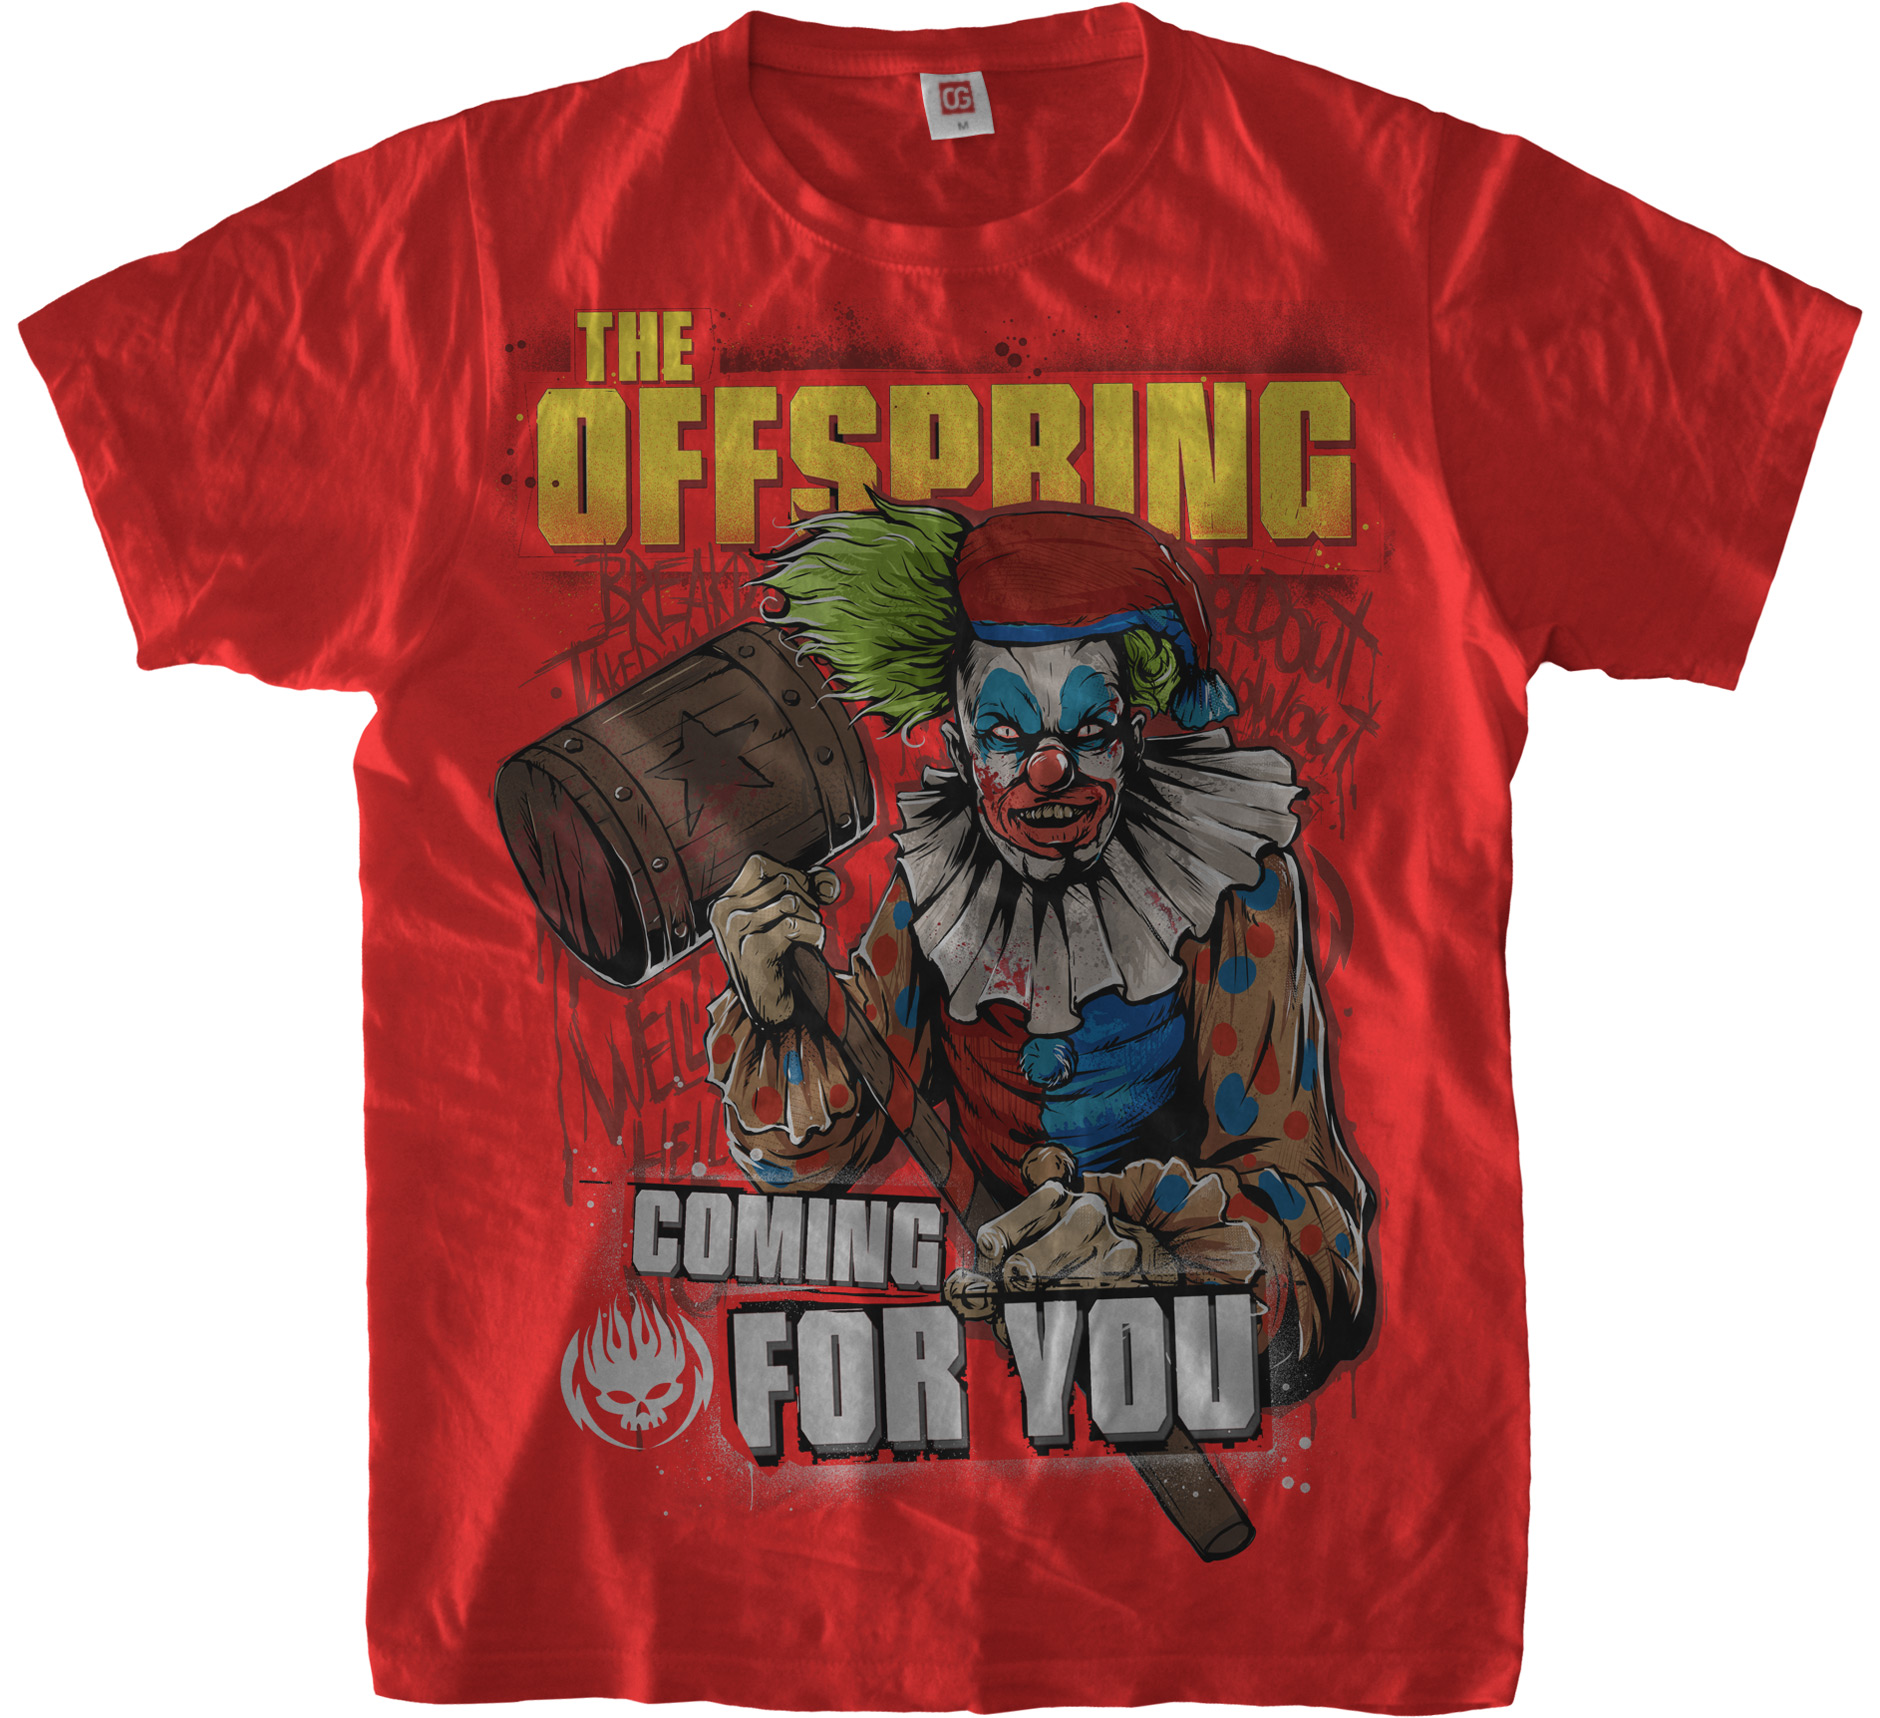 Red «Coming for you» T-Shirt for The Offspring